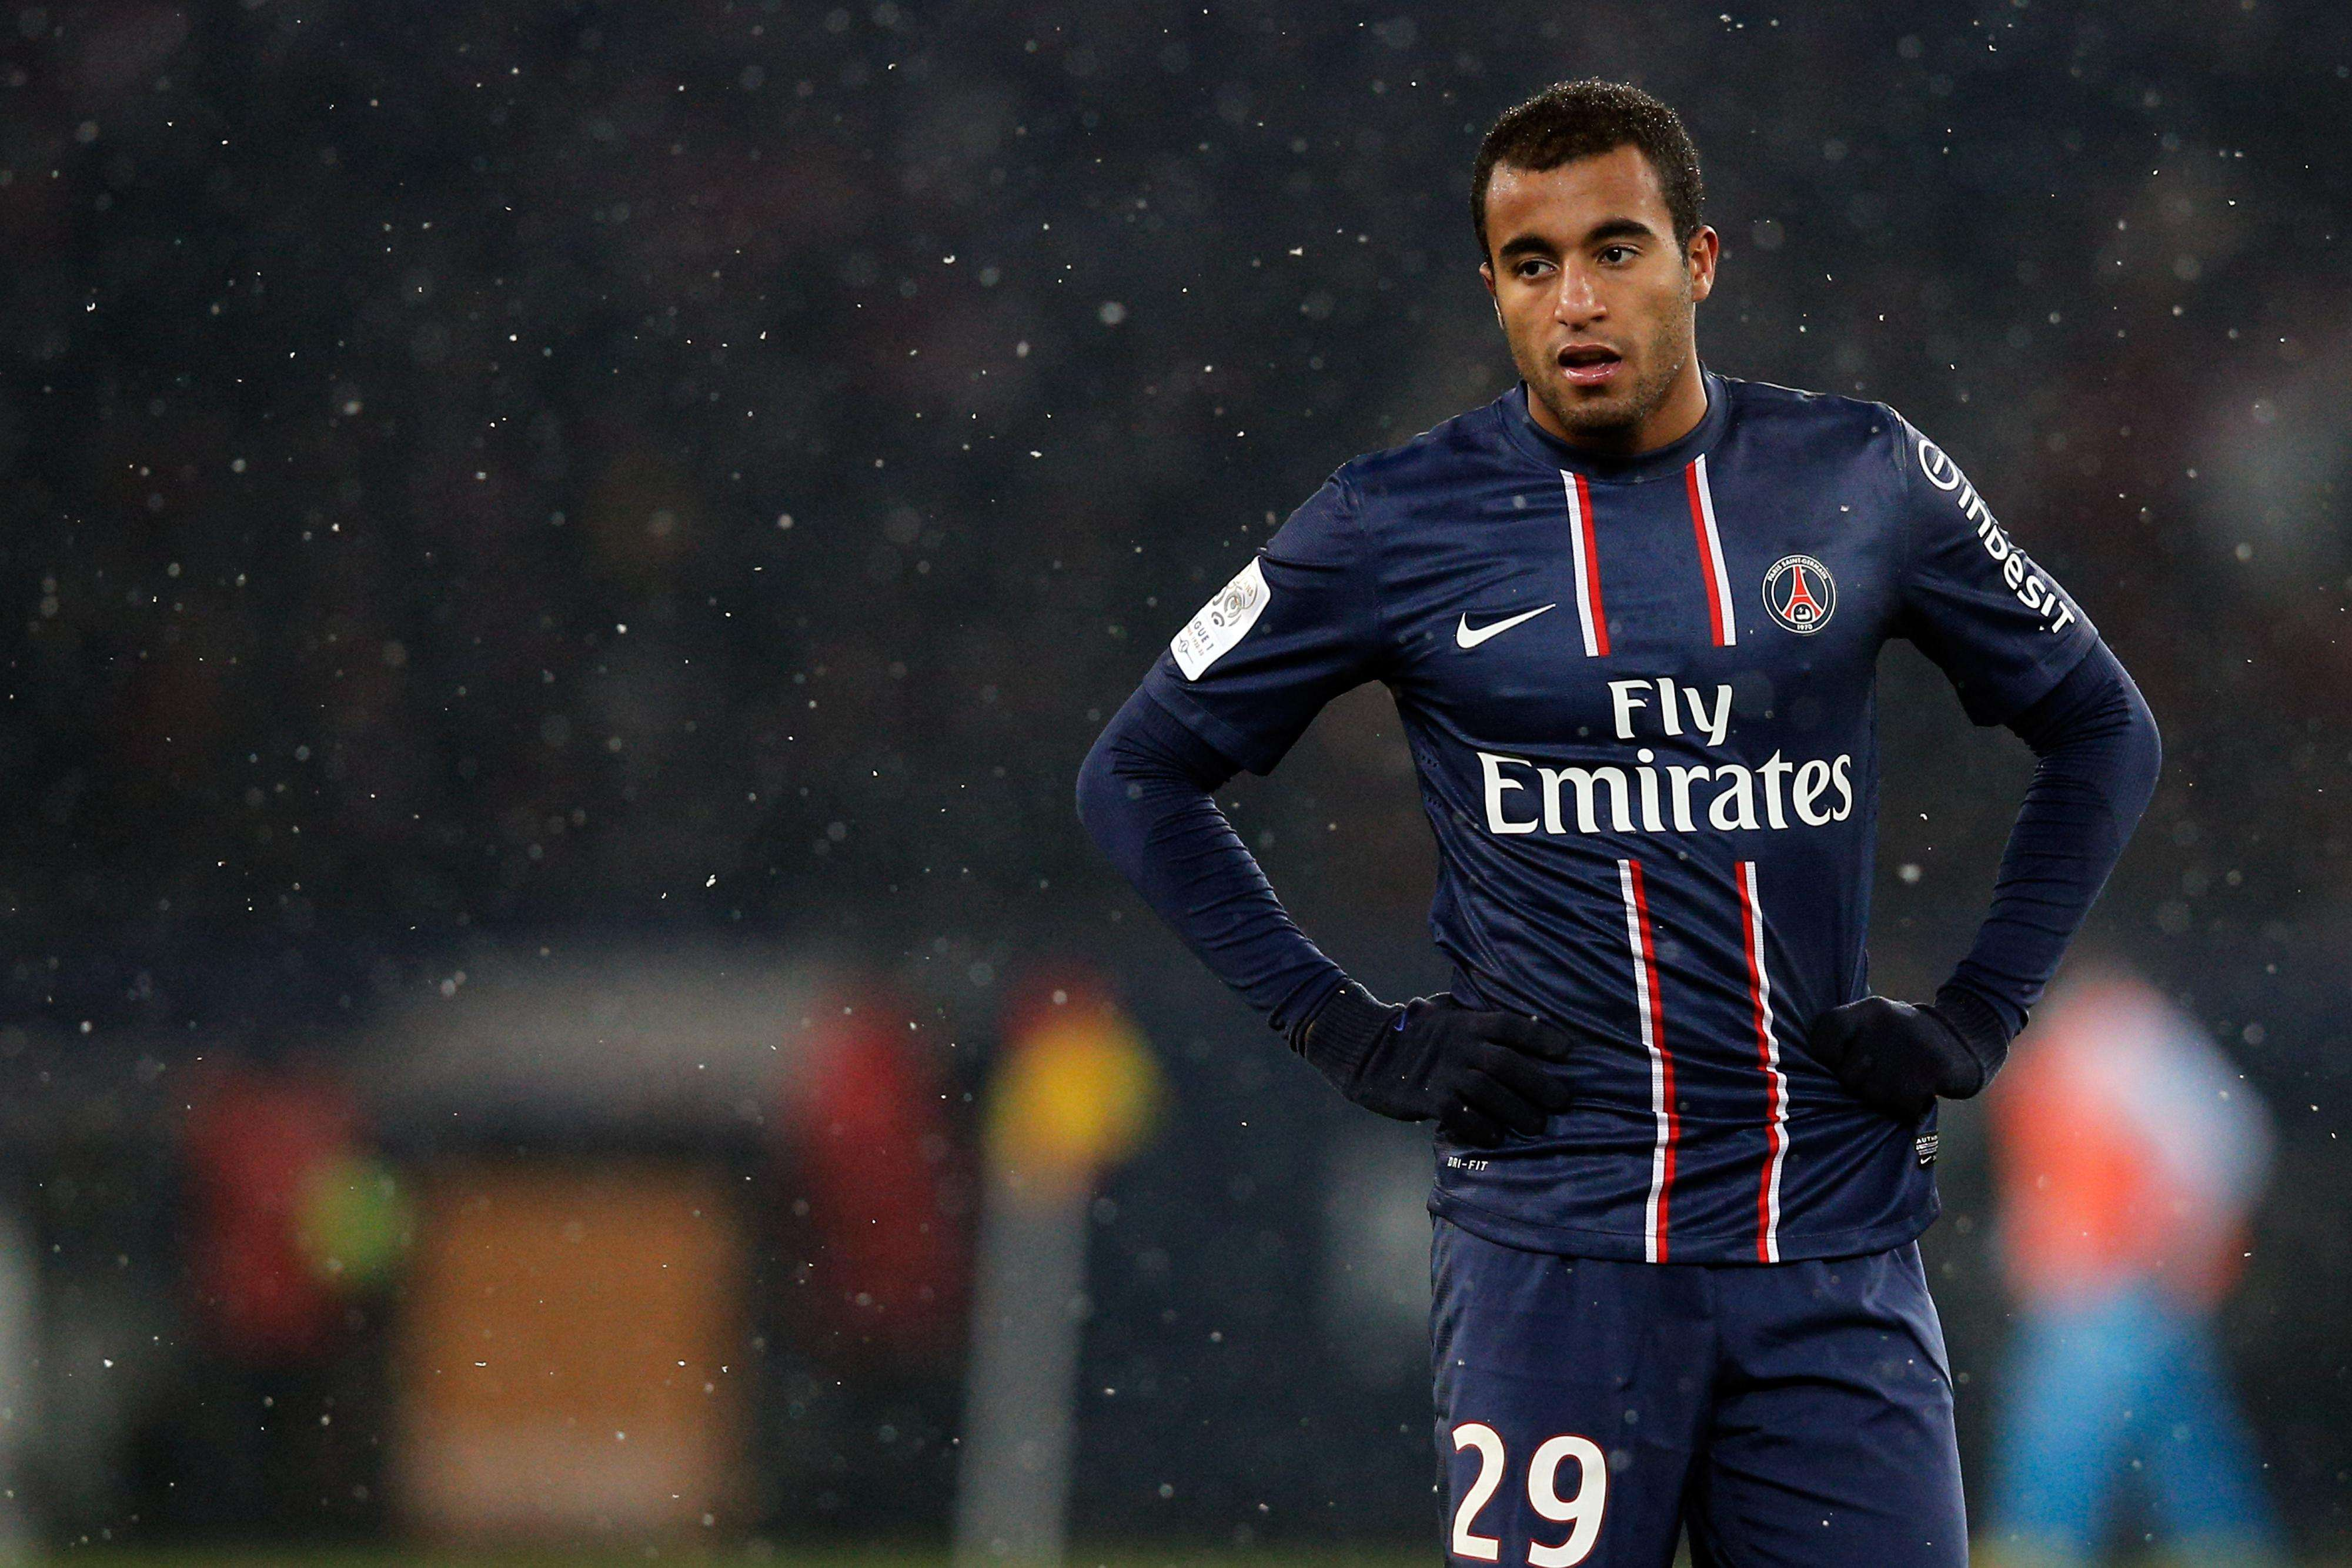 Lucas Moura, PSG Foto: Dean Mouhtaropoulos/Getty Images